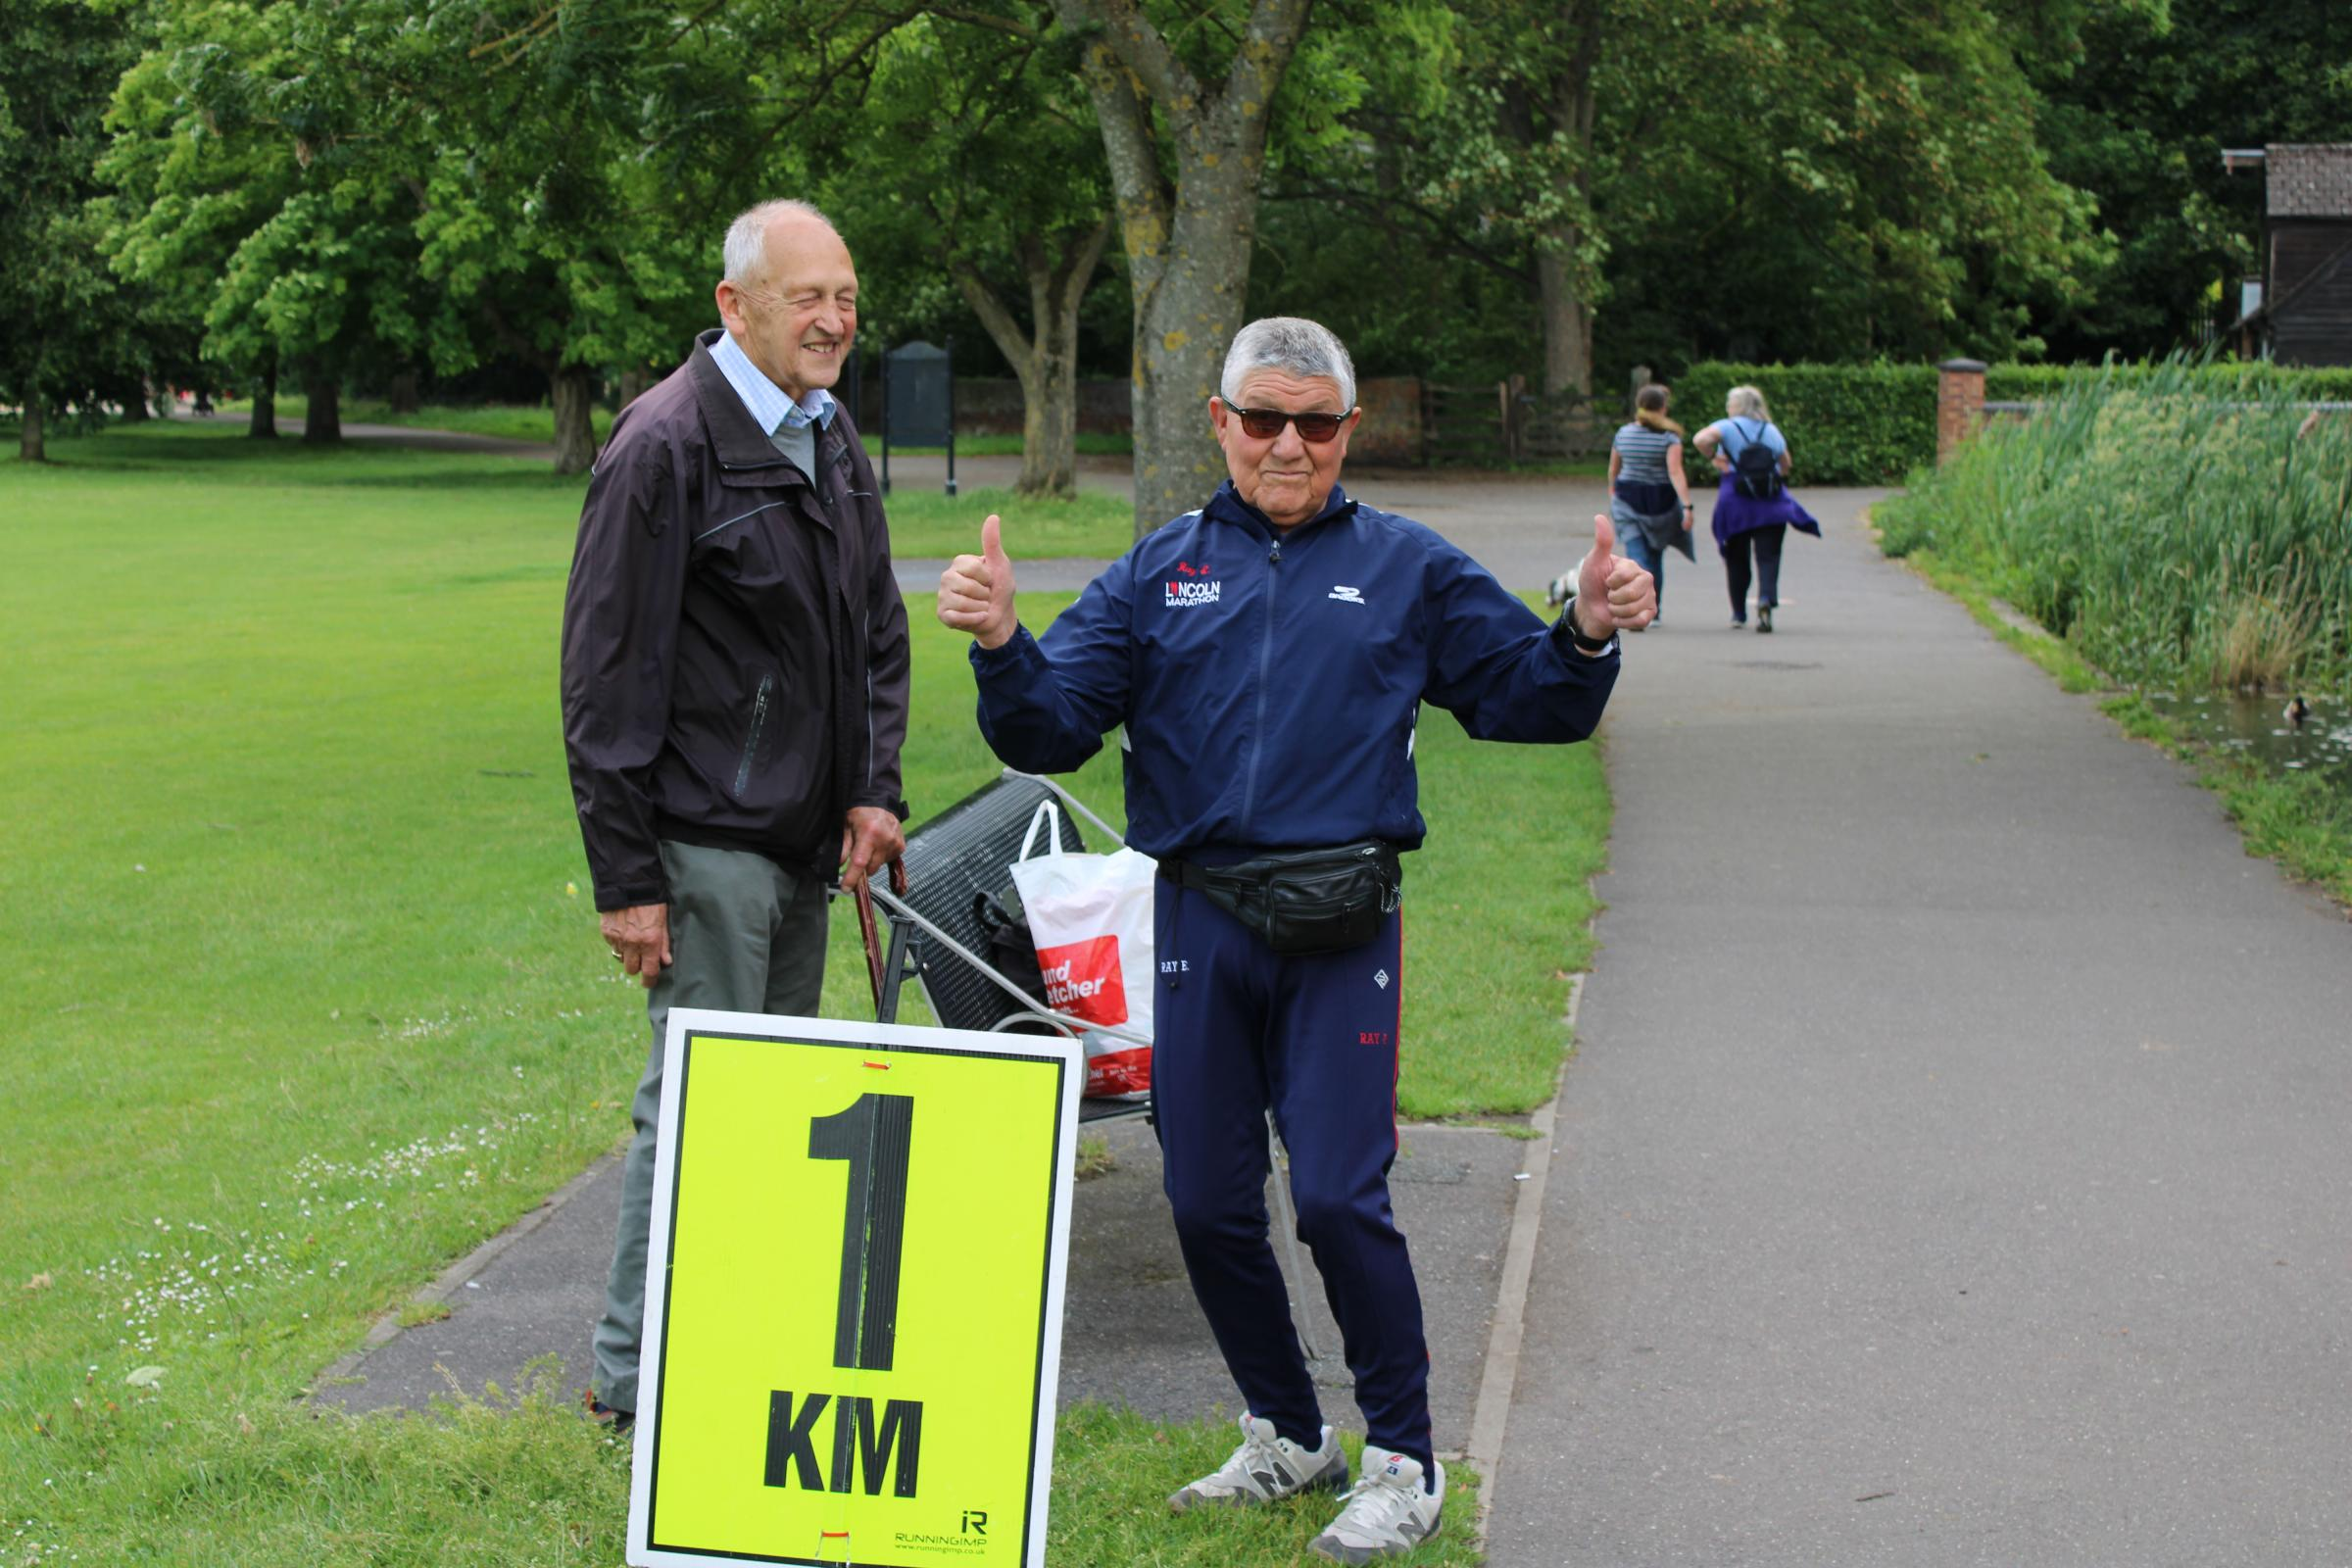 Bucks Free Press: Ray at the 1km marker